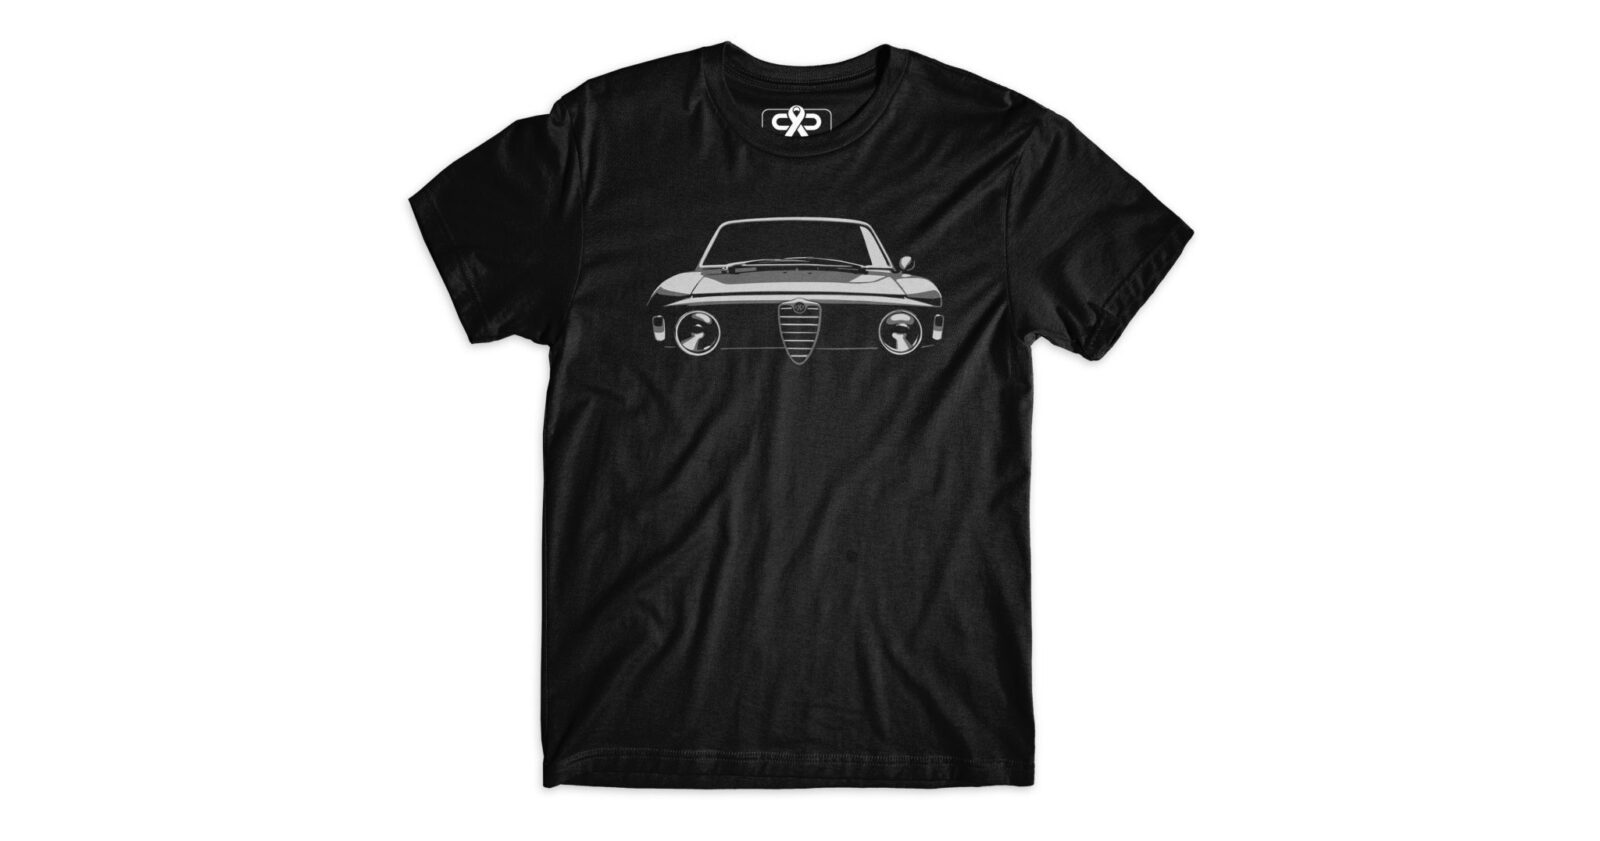 Cure Collection GT Veloce Tee 1600x841 - Cure Collection GT Veloce Tee